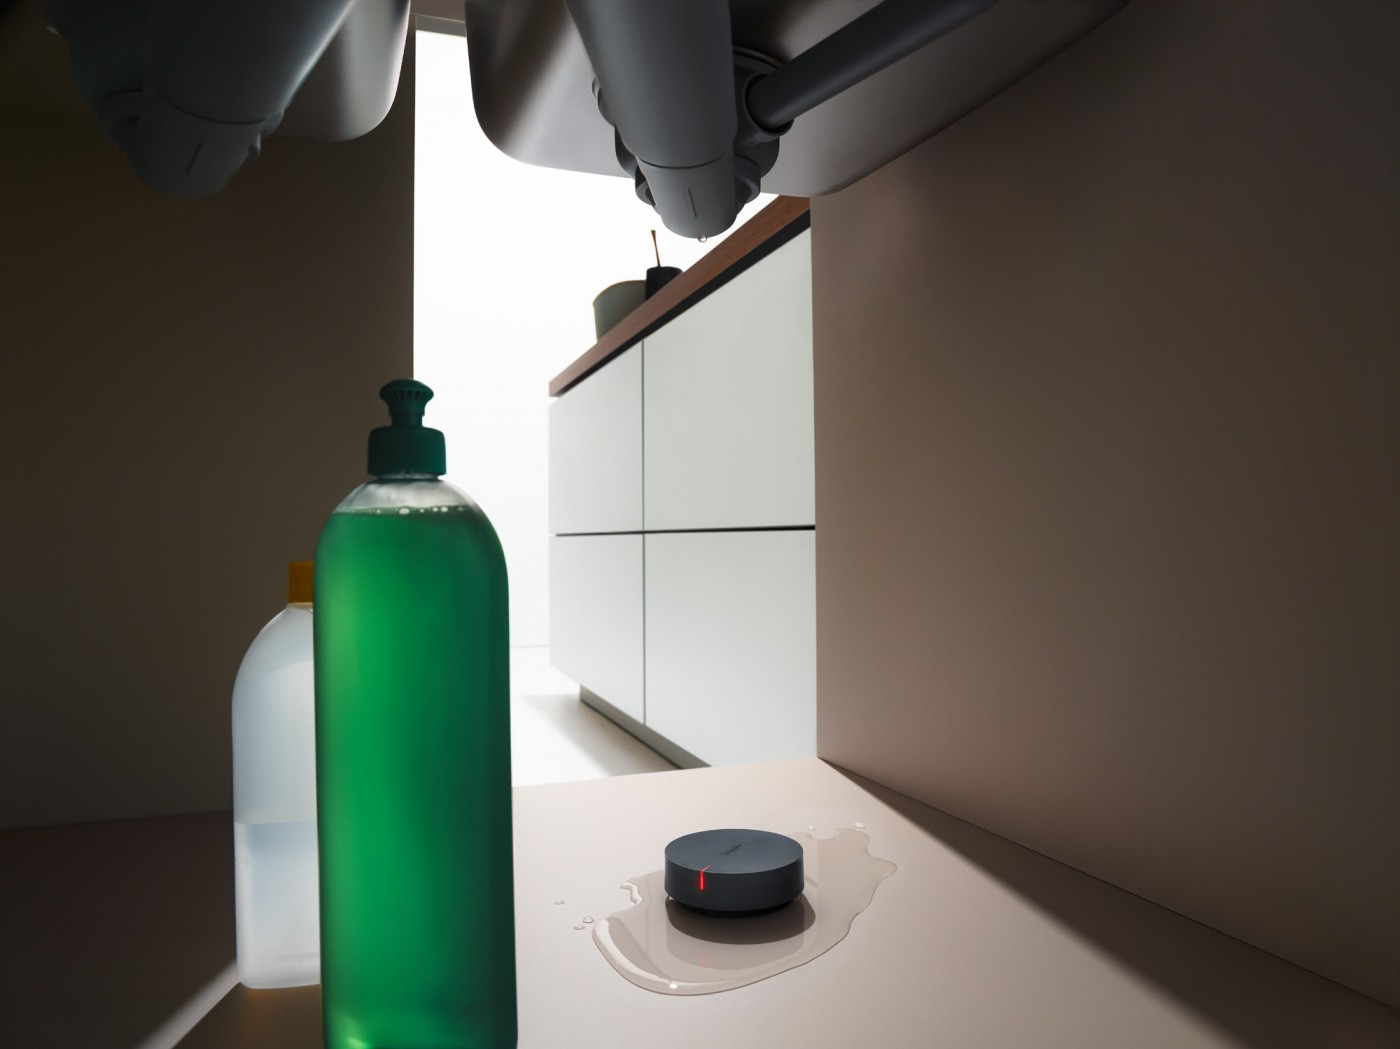 Hansgrohe Smart Home by Johann Cohrs represented by stoever artists